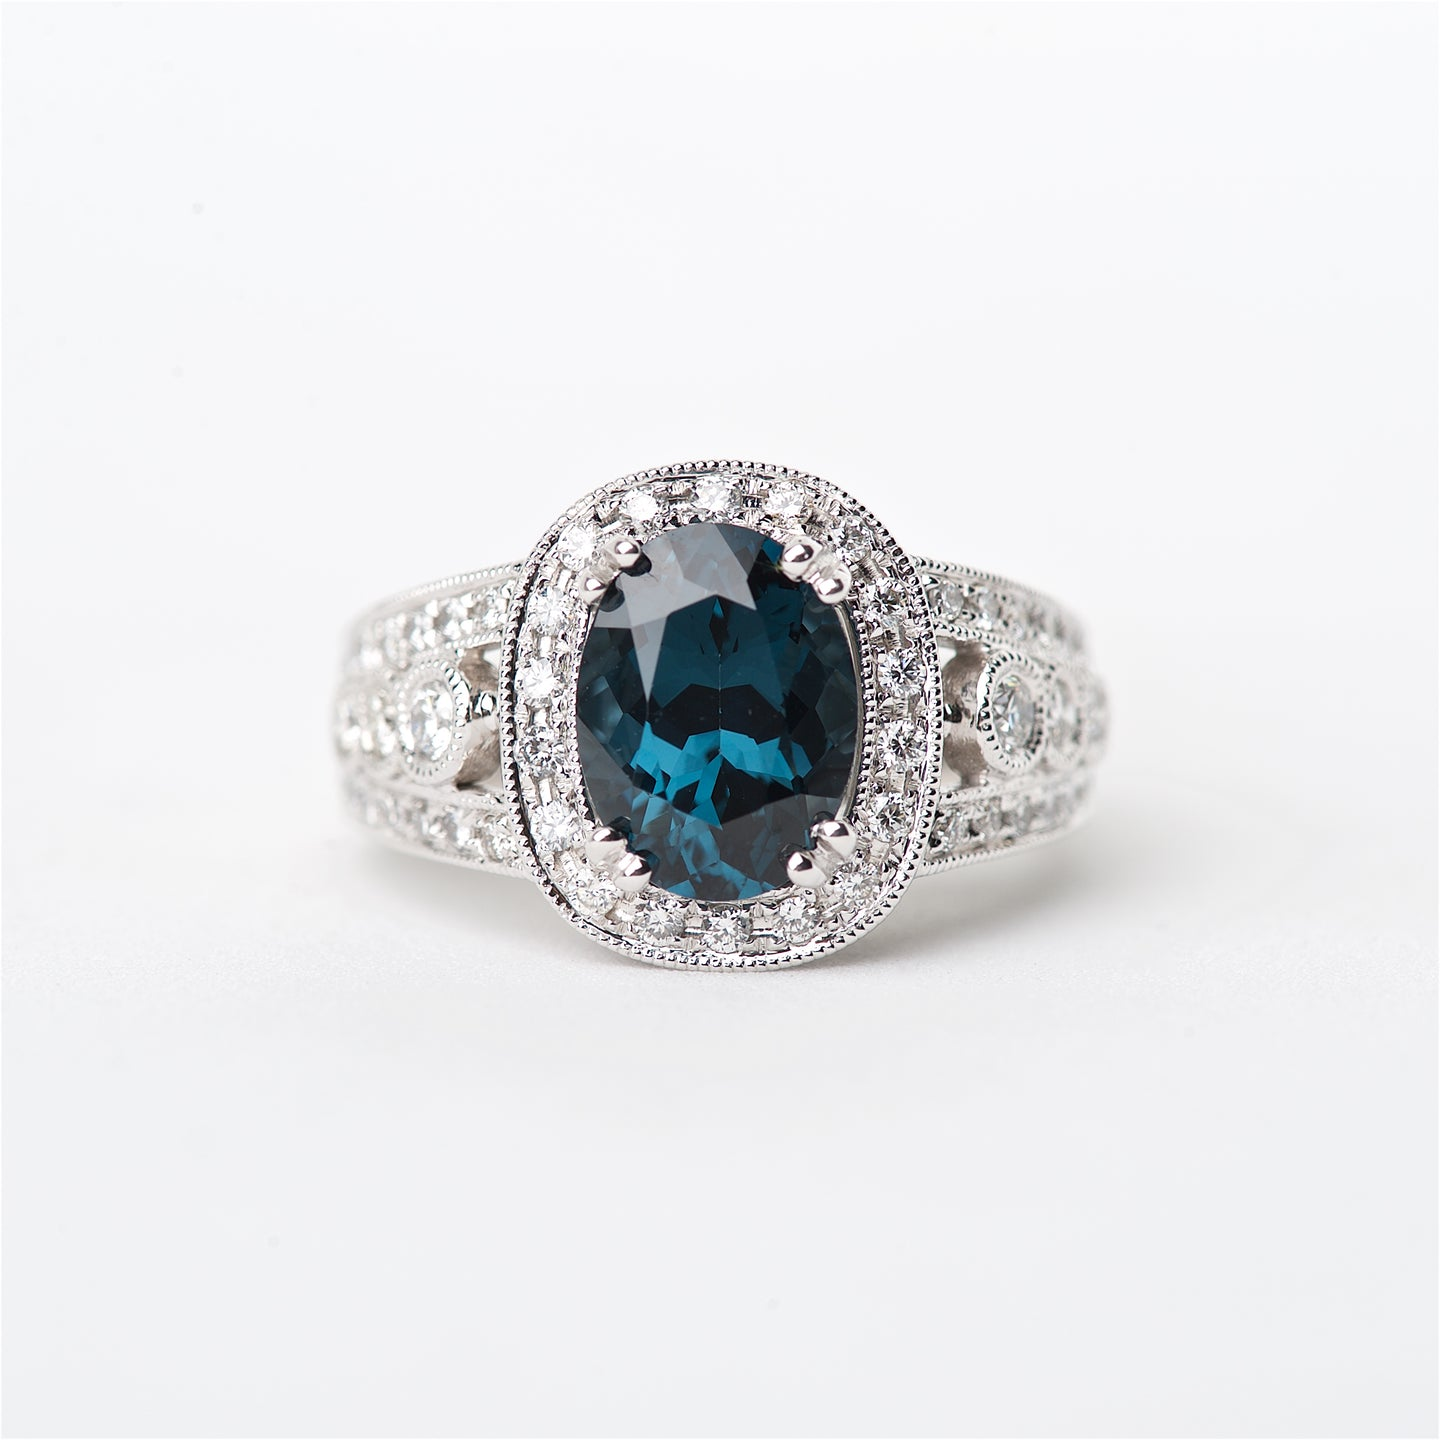 The Rima - 18K Blue Spinel and Diamond ring